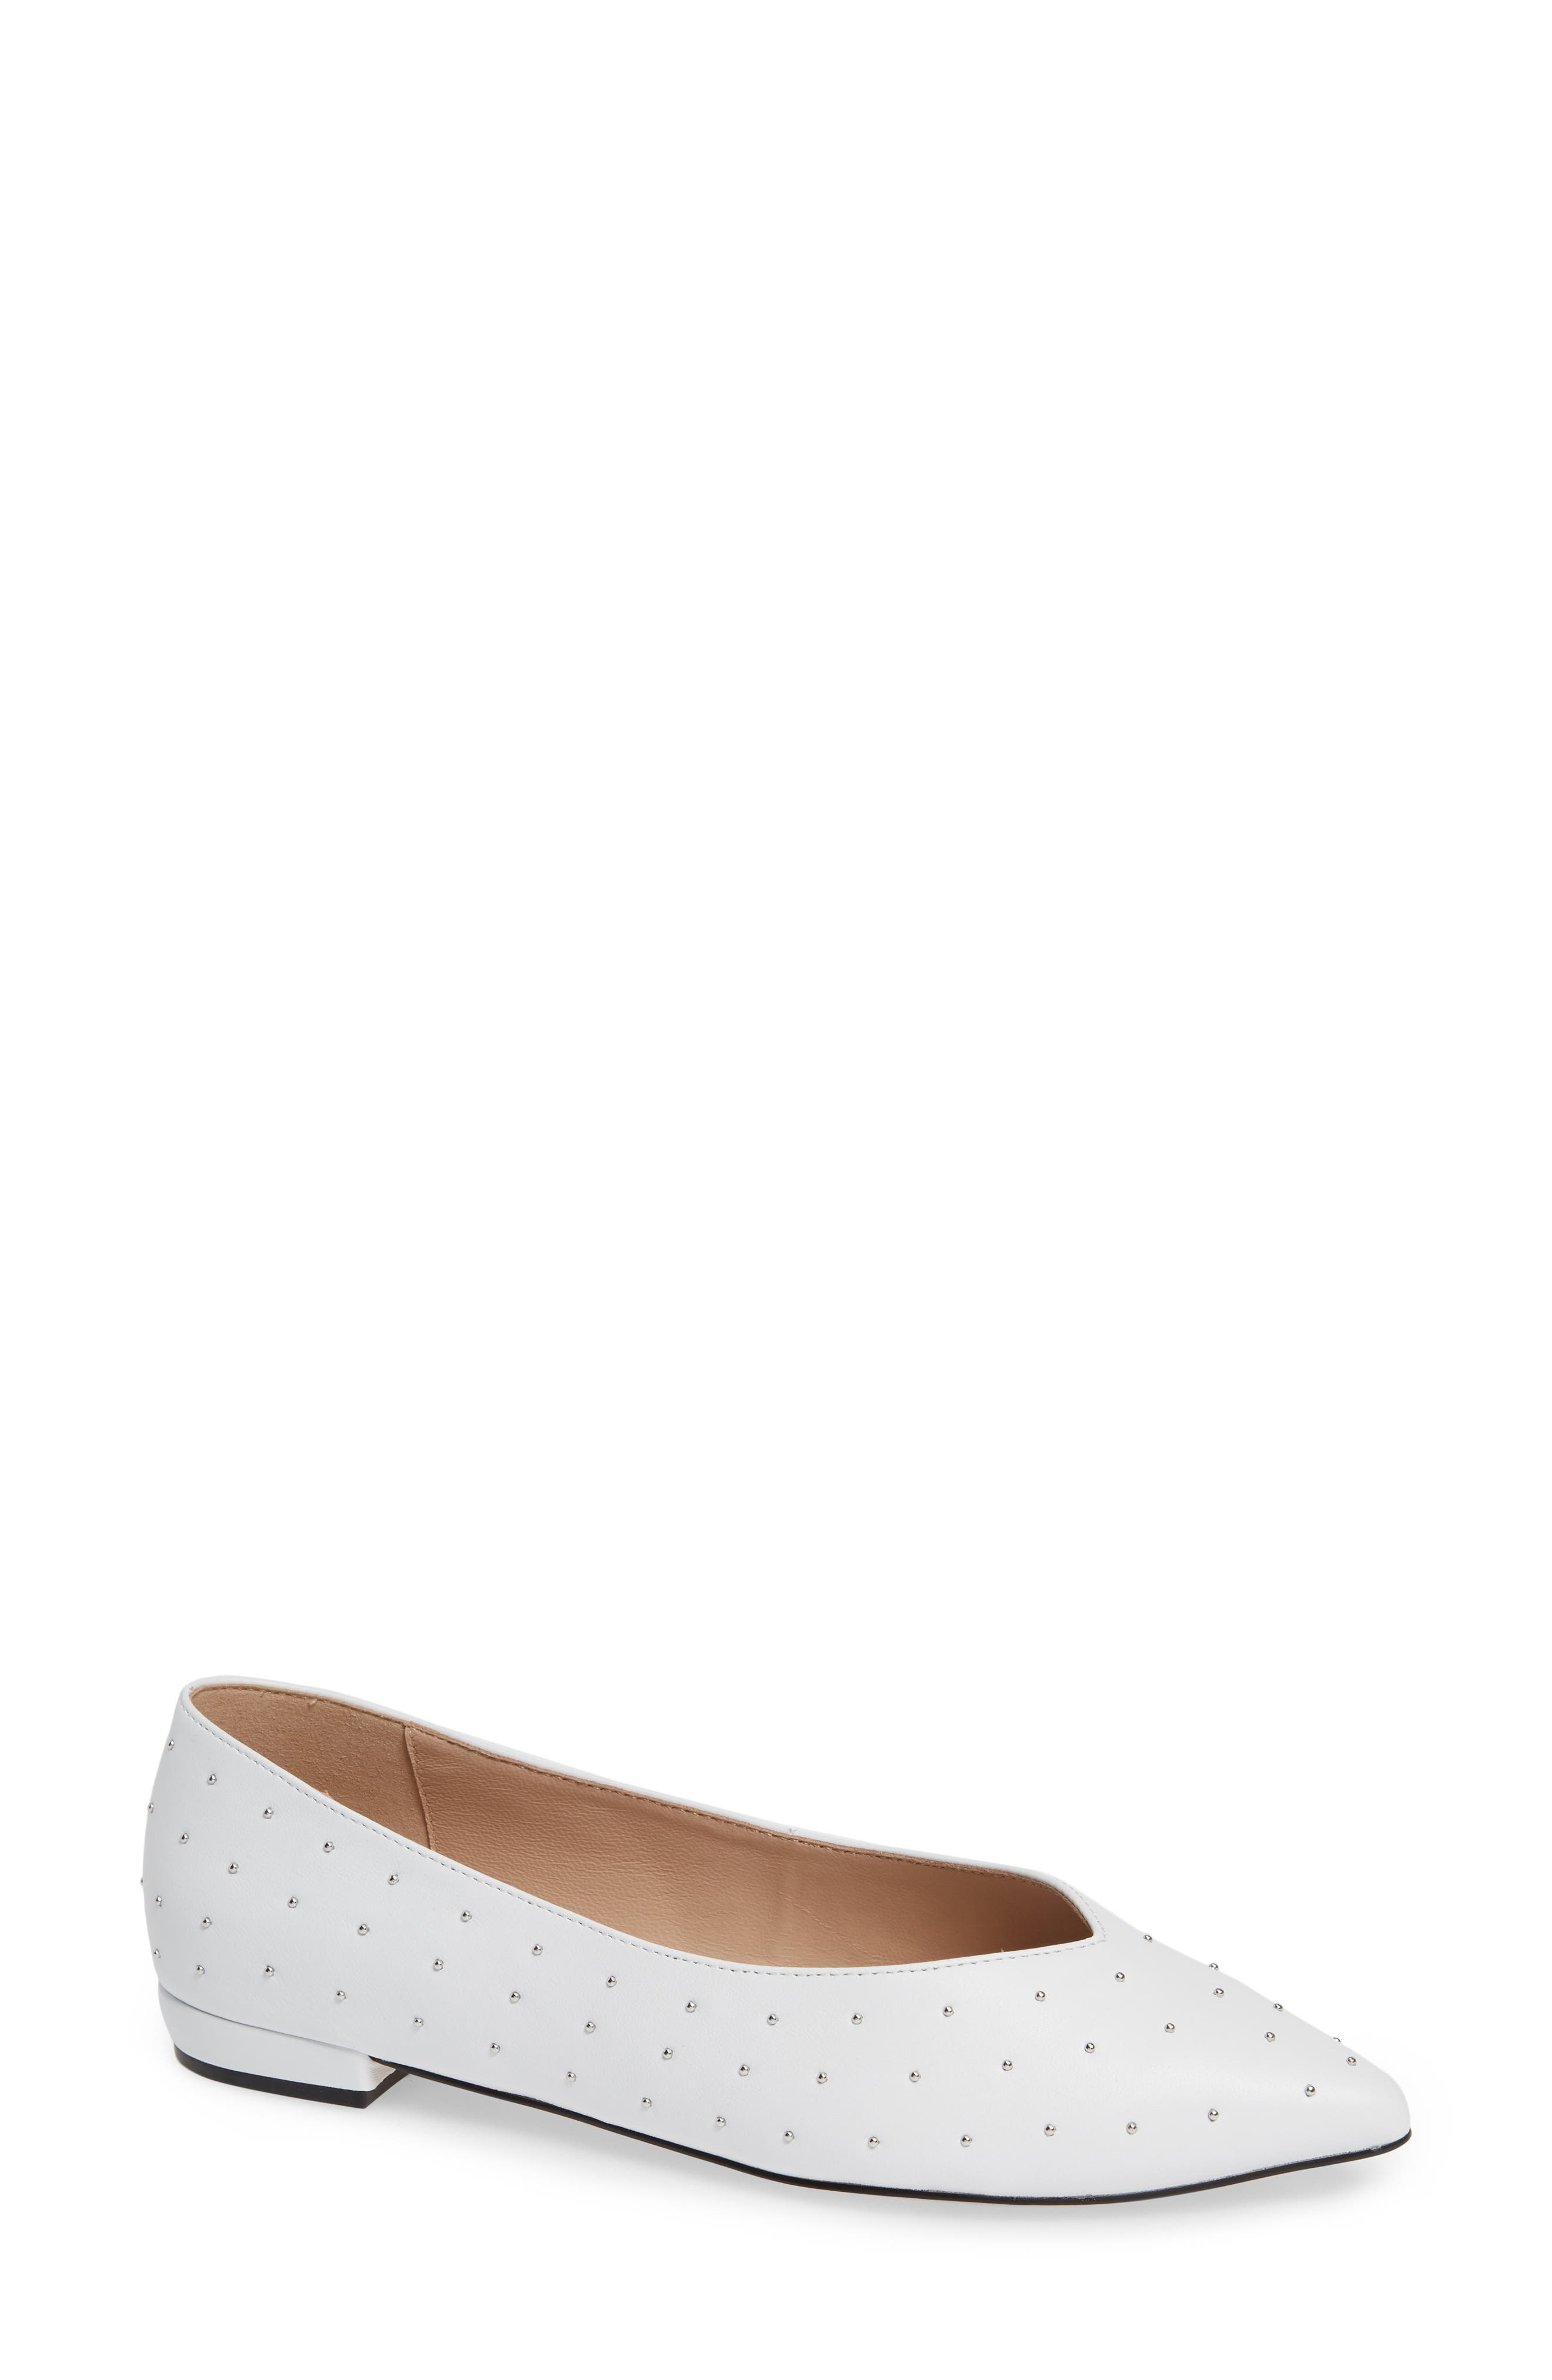 Snbea Studded Flat,                             Main thumbnail 1, color,                             WHITE LEATHER